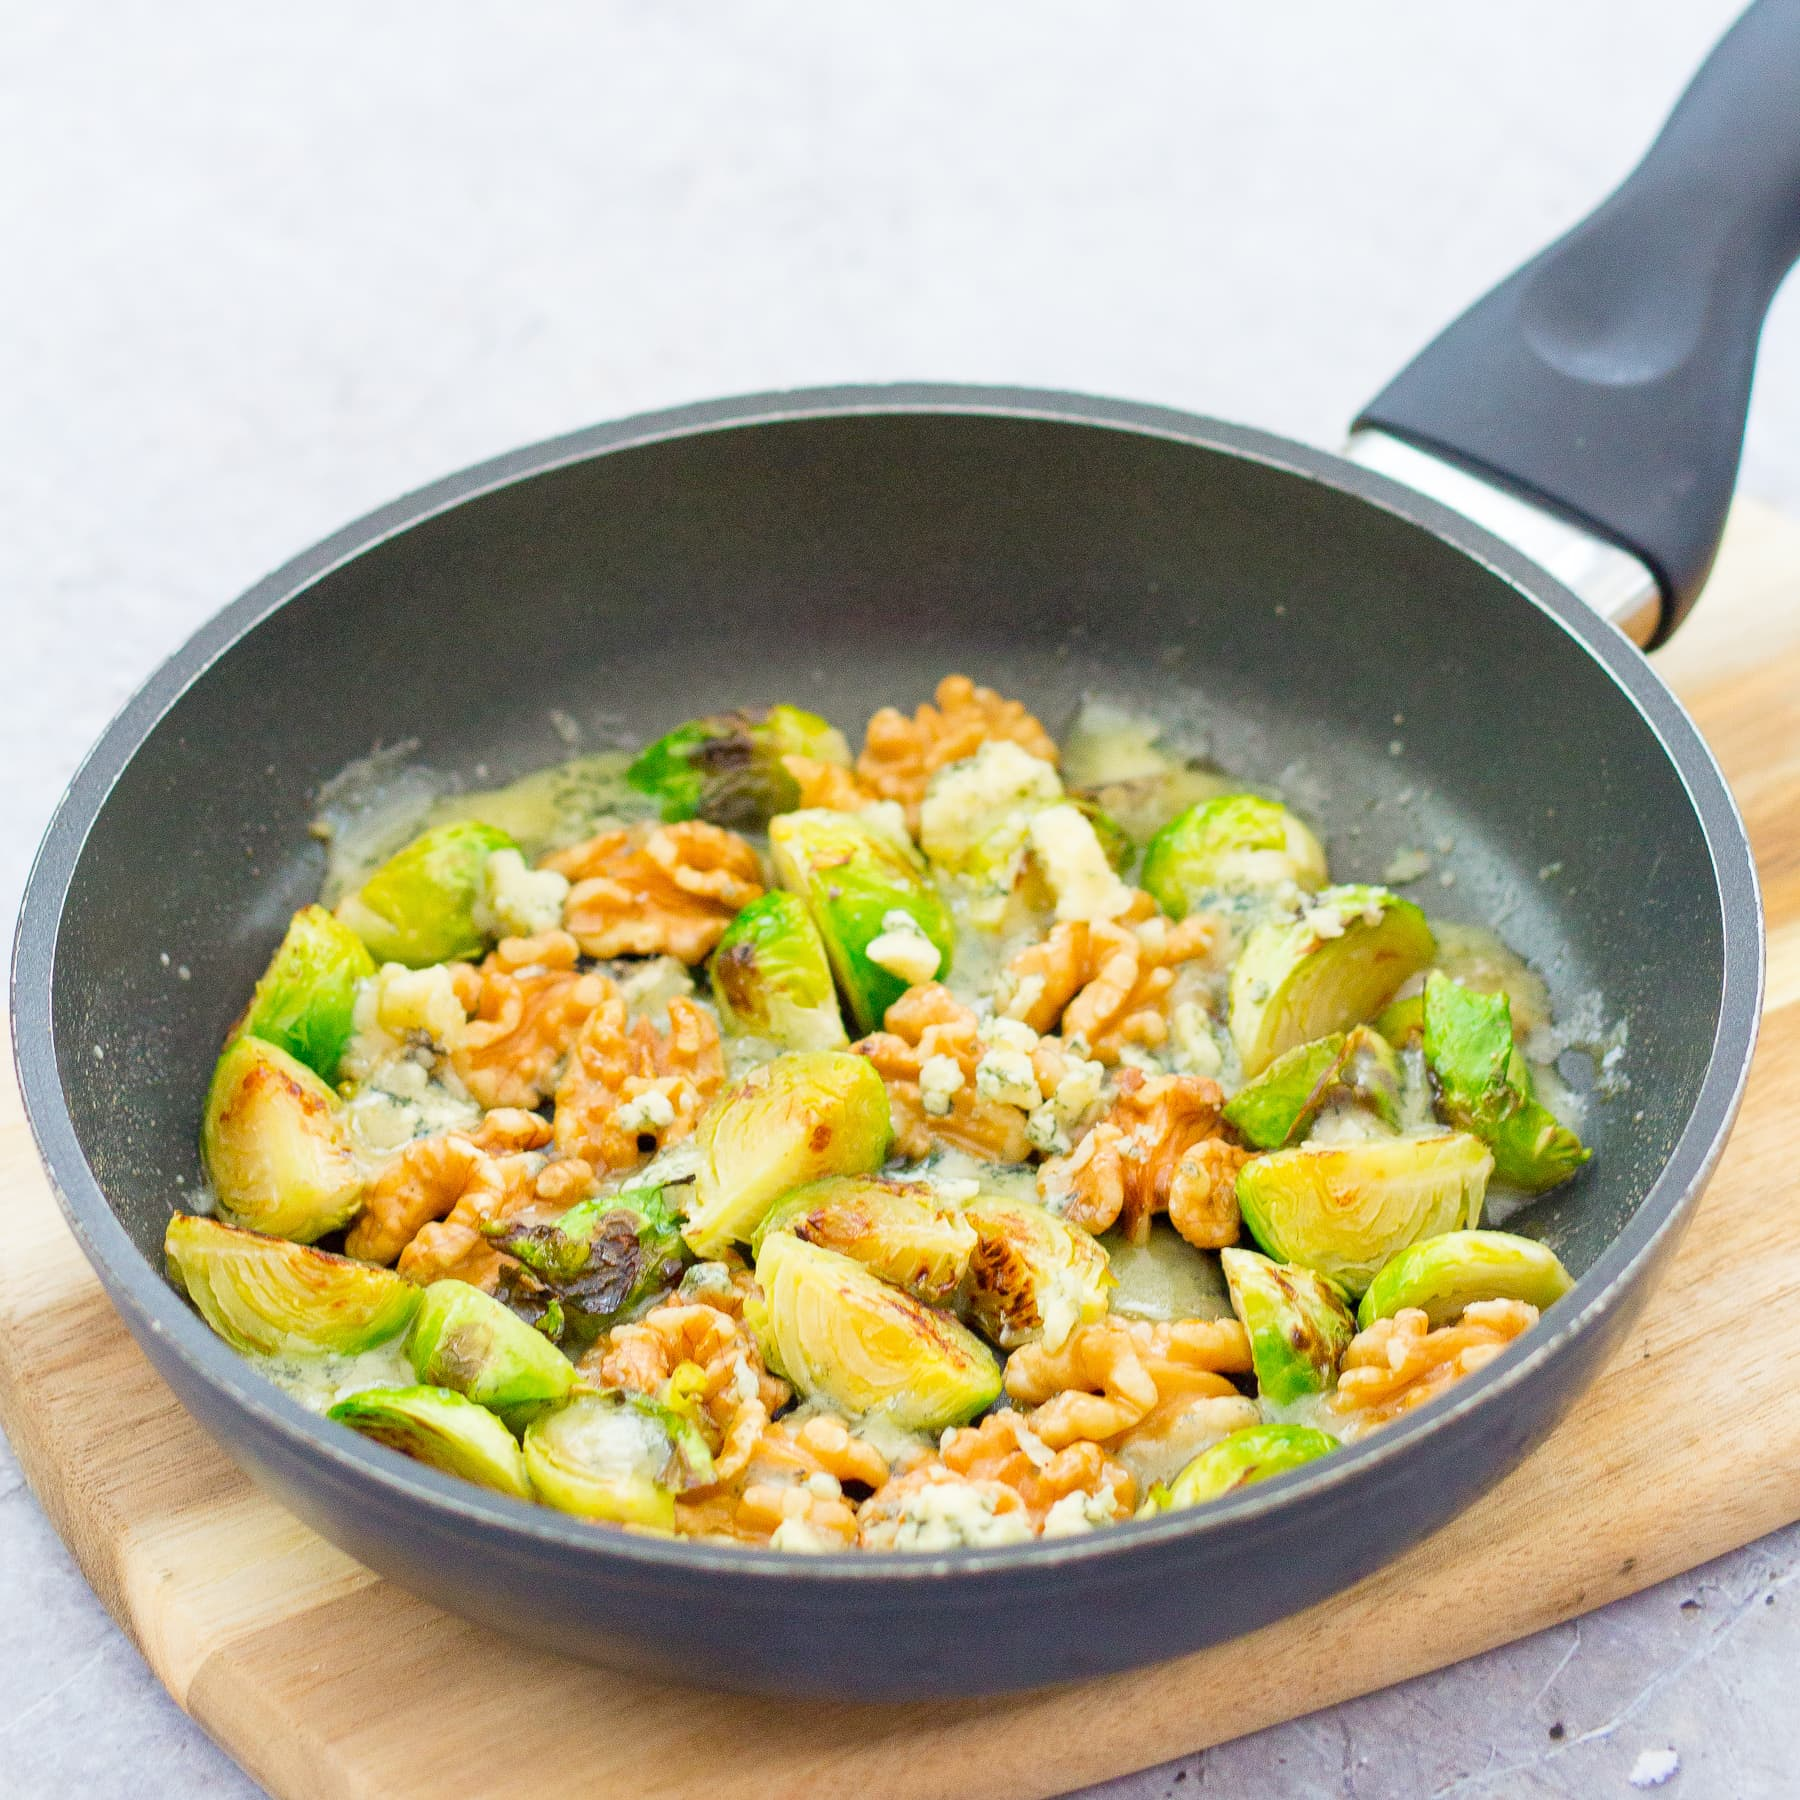 Pan Fried Sprouts with Walnuts, Honey and Stilton